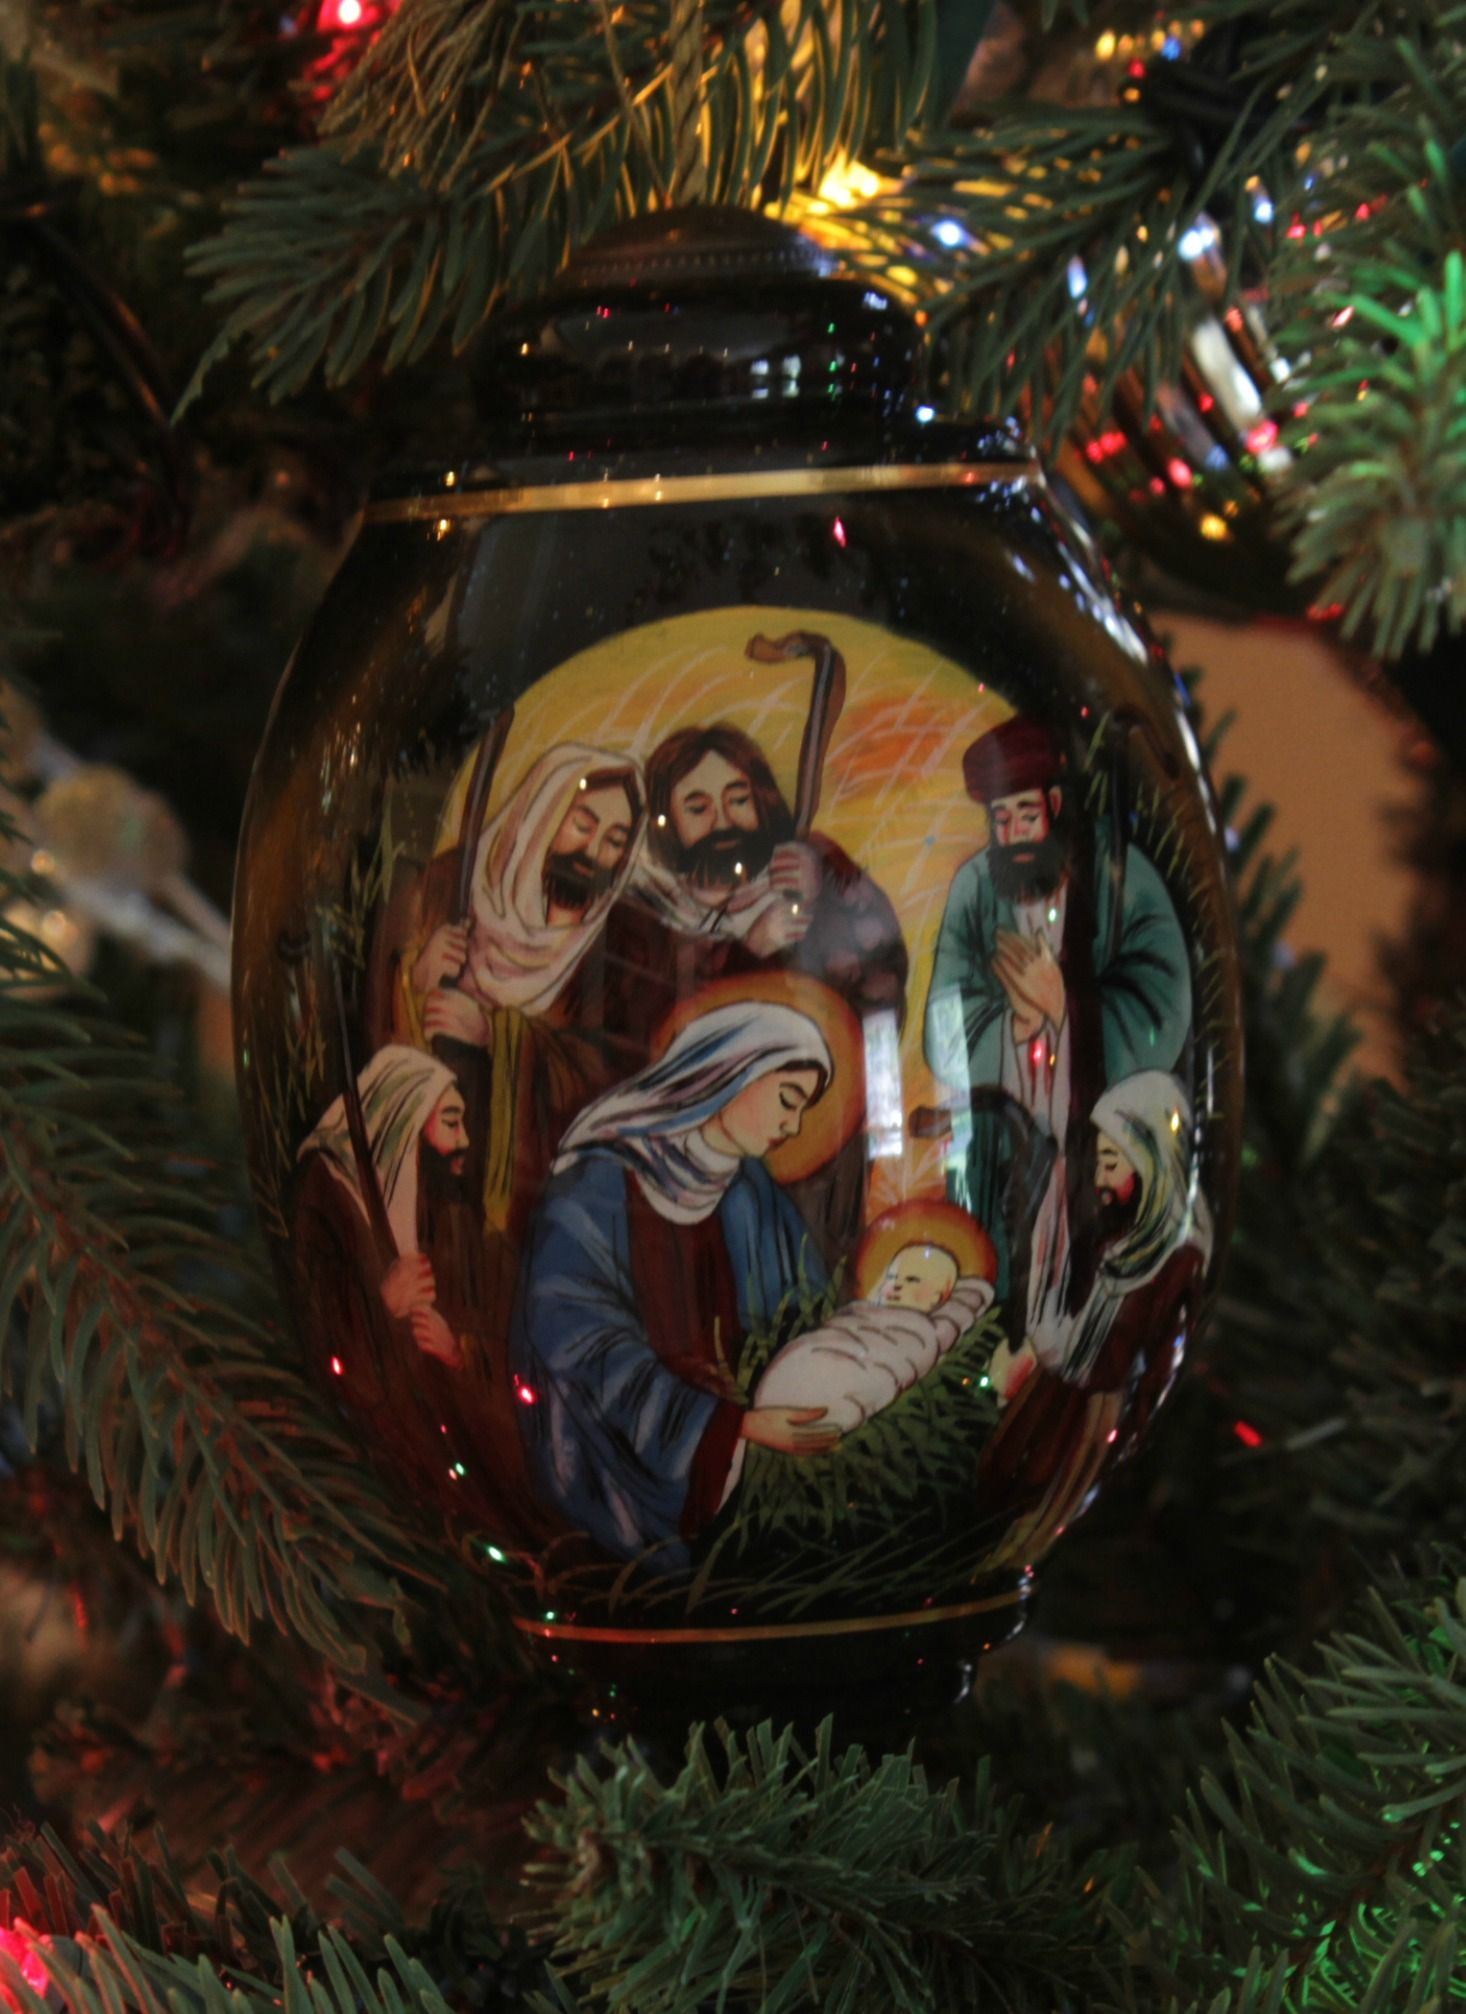 this nativity scene ornament is hand painted using an ancient